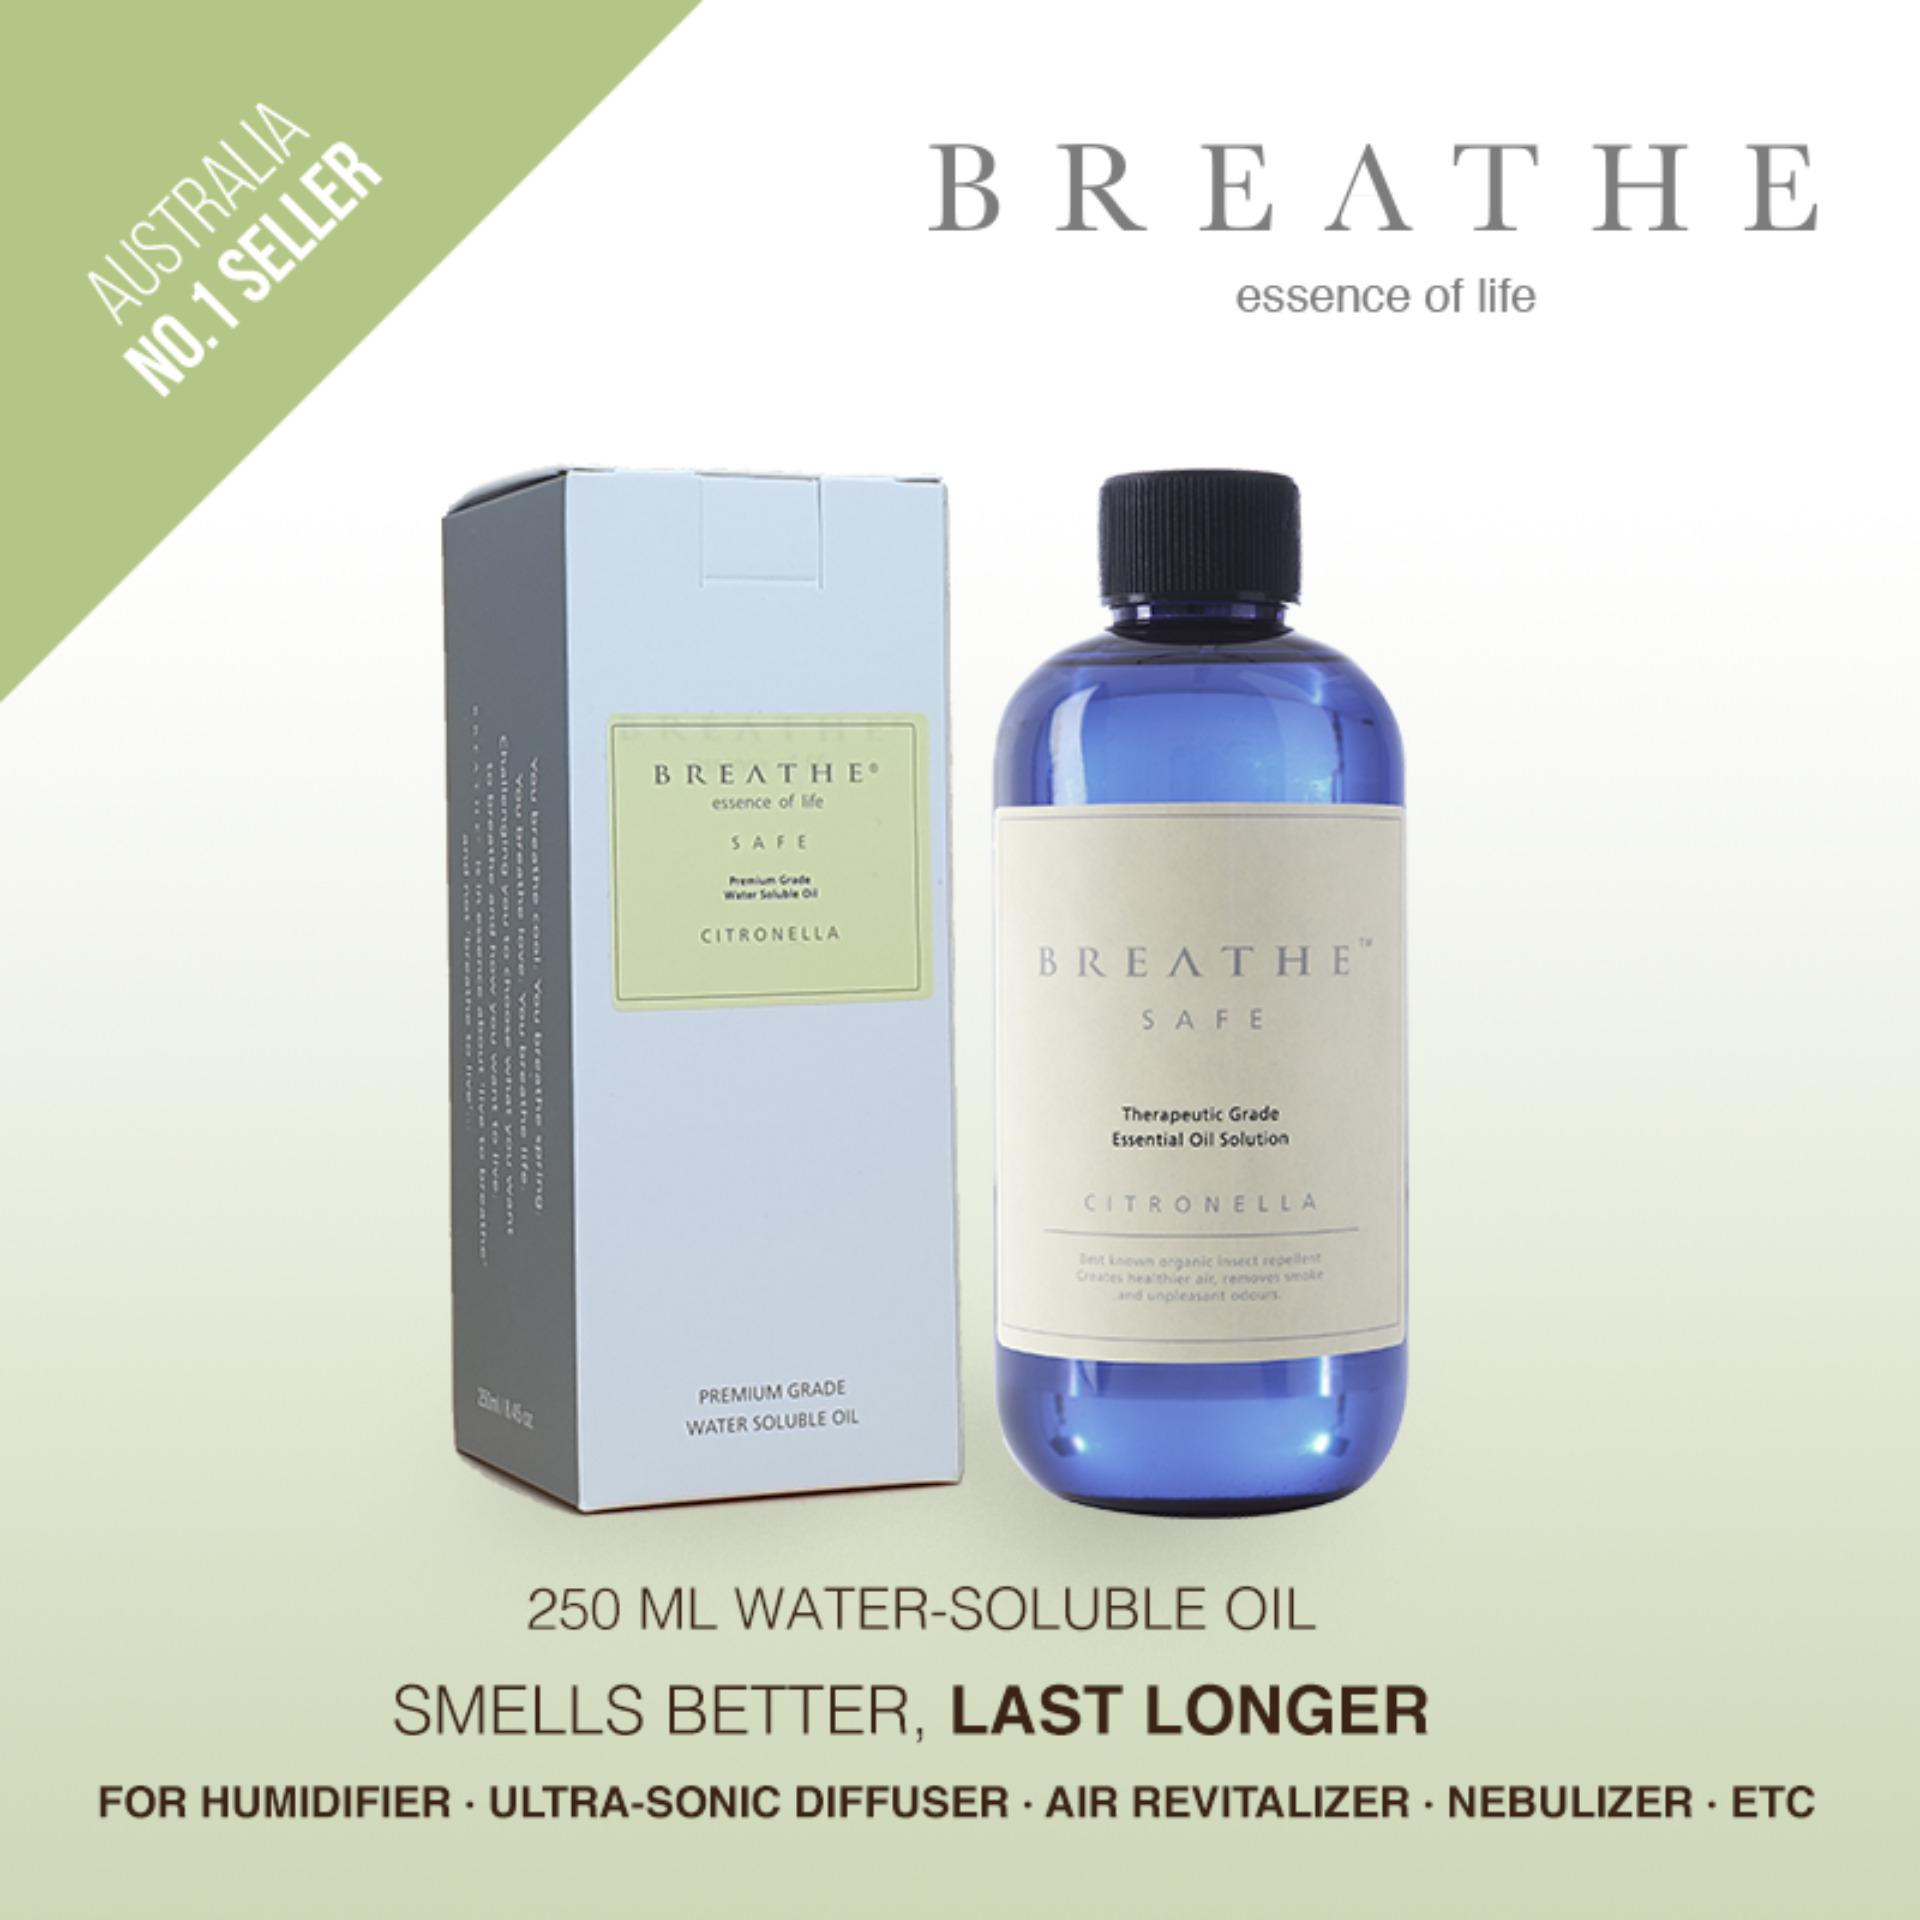 BREATHE Air Revitalizer essence - Citronella